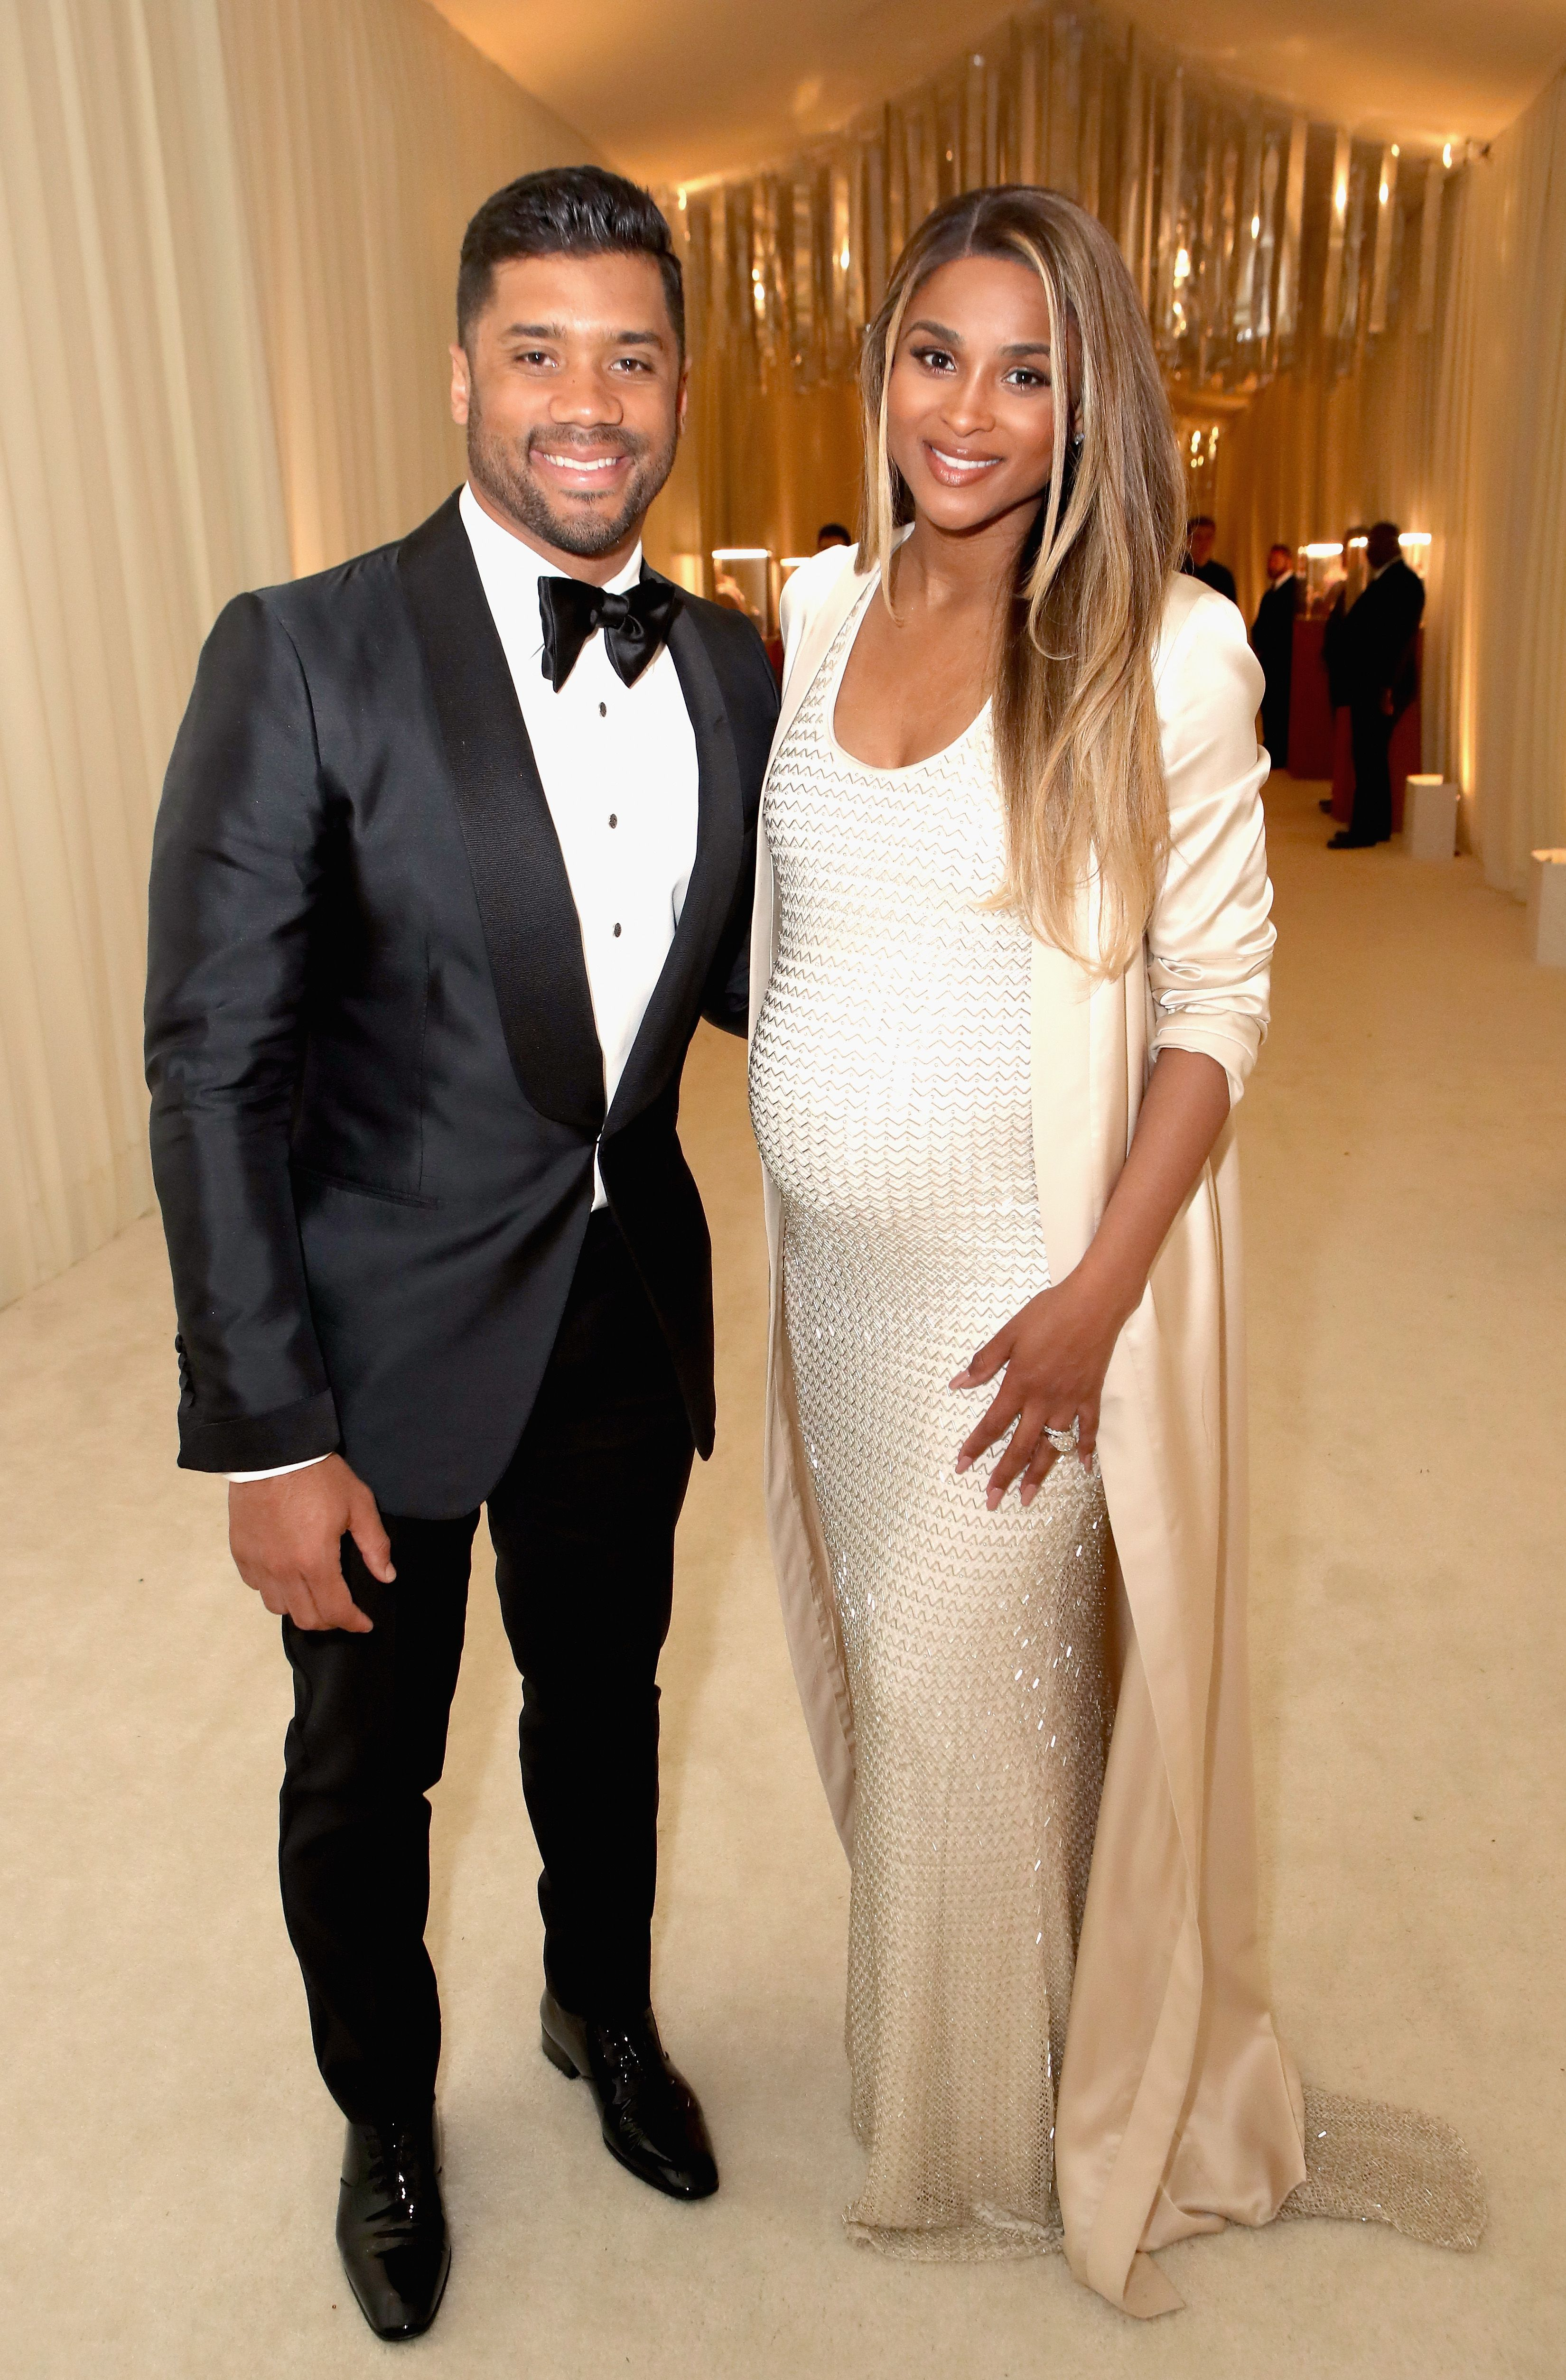 Russell Wilson and singer Ciara at the 25th Annual Elton John AIDS Foundation's Academy Awards Viewing Party in Hollywood in 2017 | Source: Getty Images